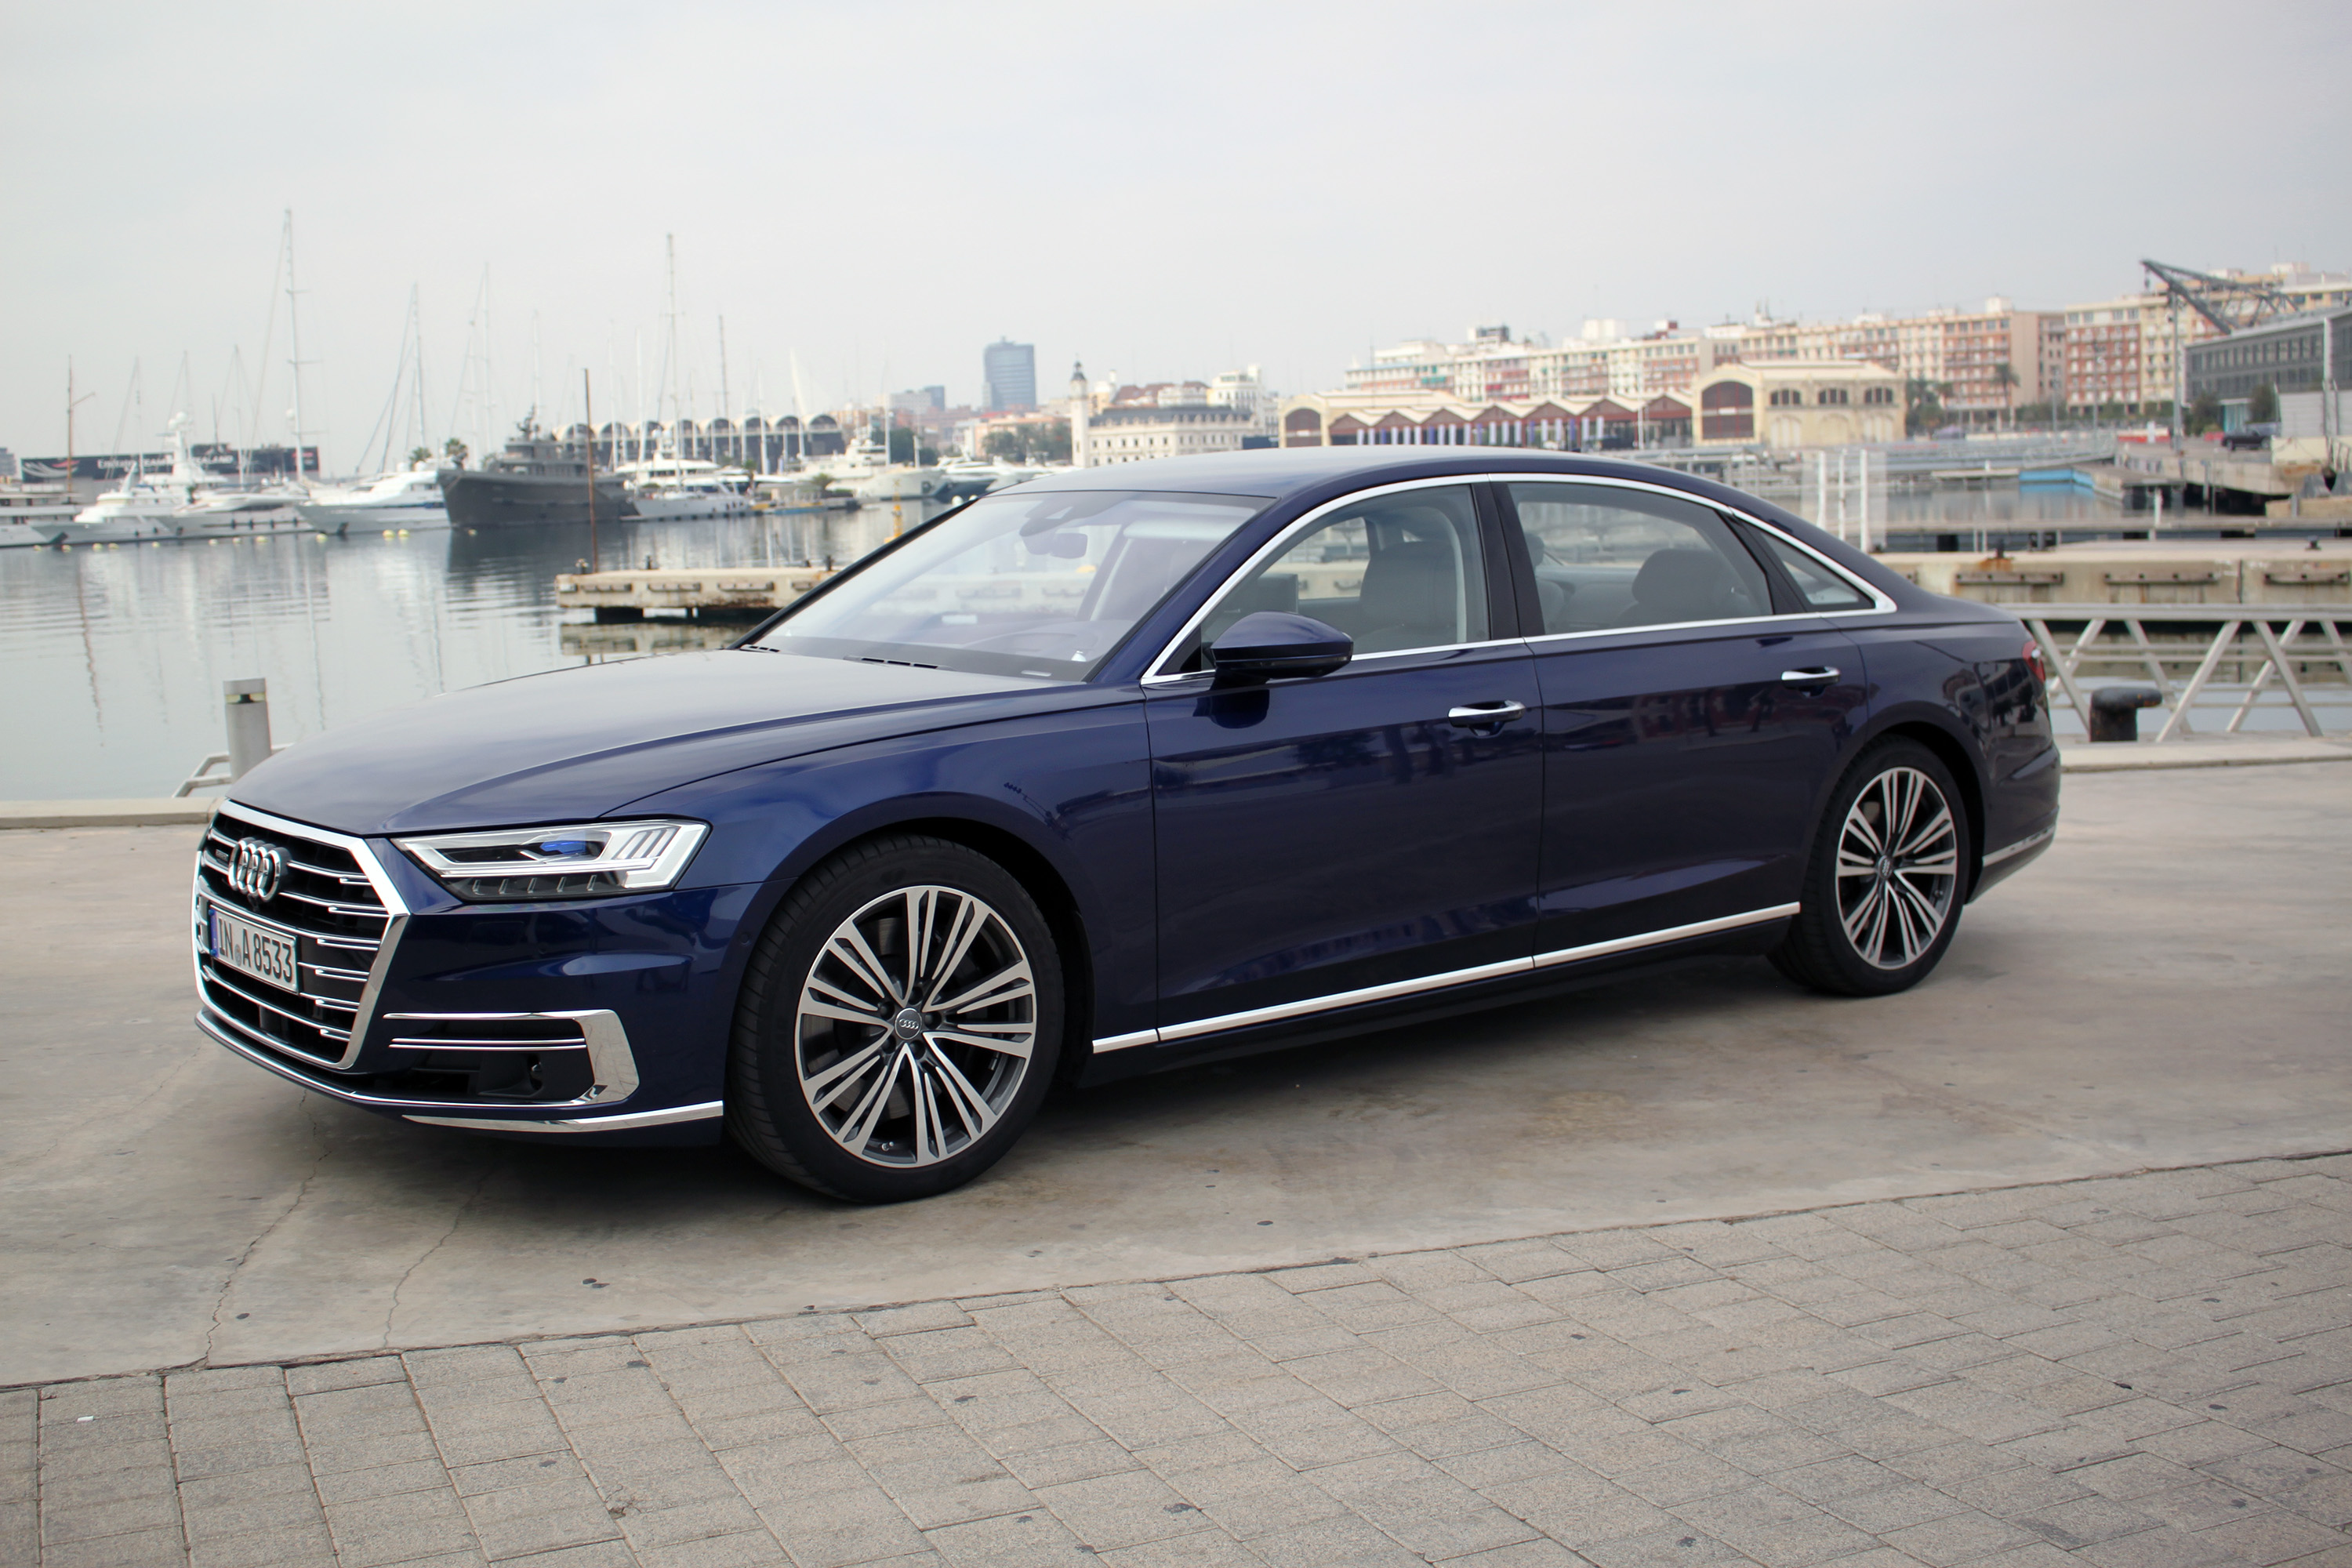 2019 audi a8 review autoguide news 2019 audi a8 review 20 sciox Image collections